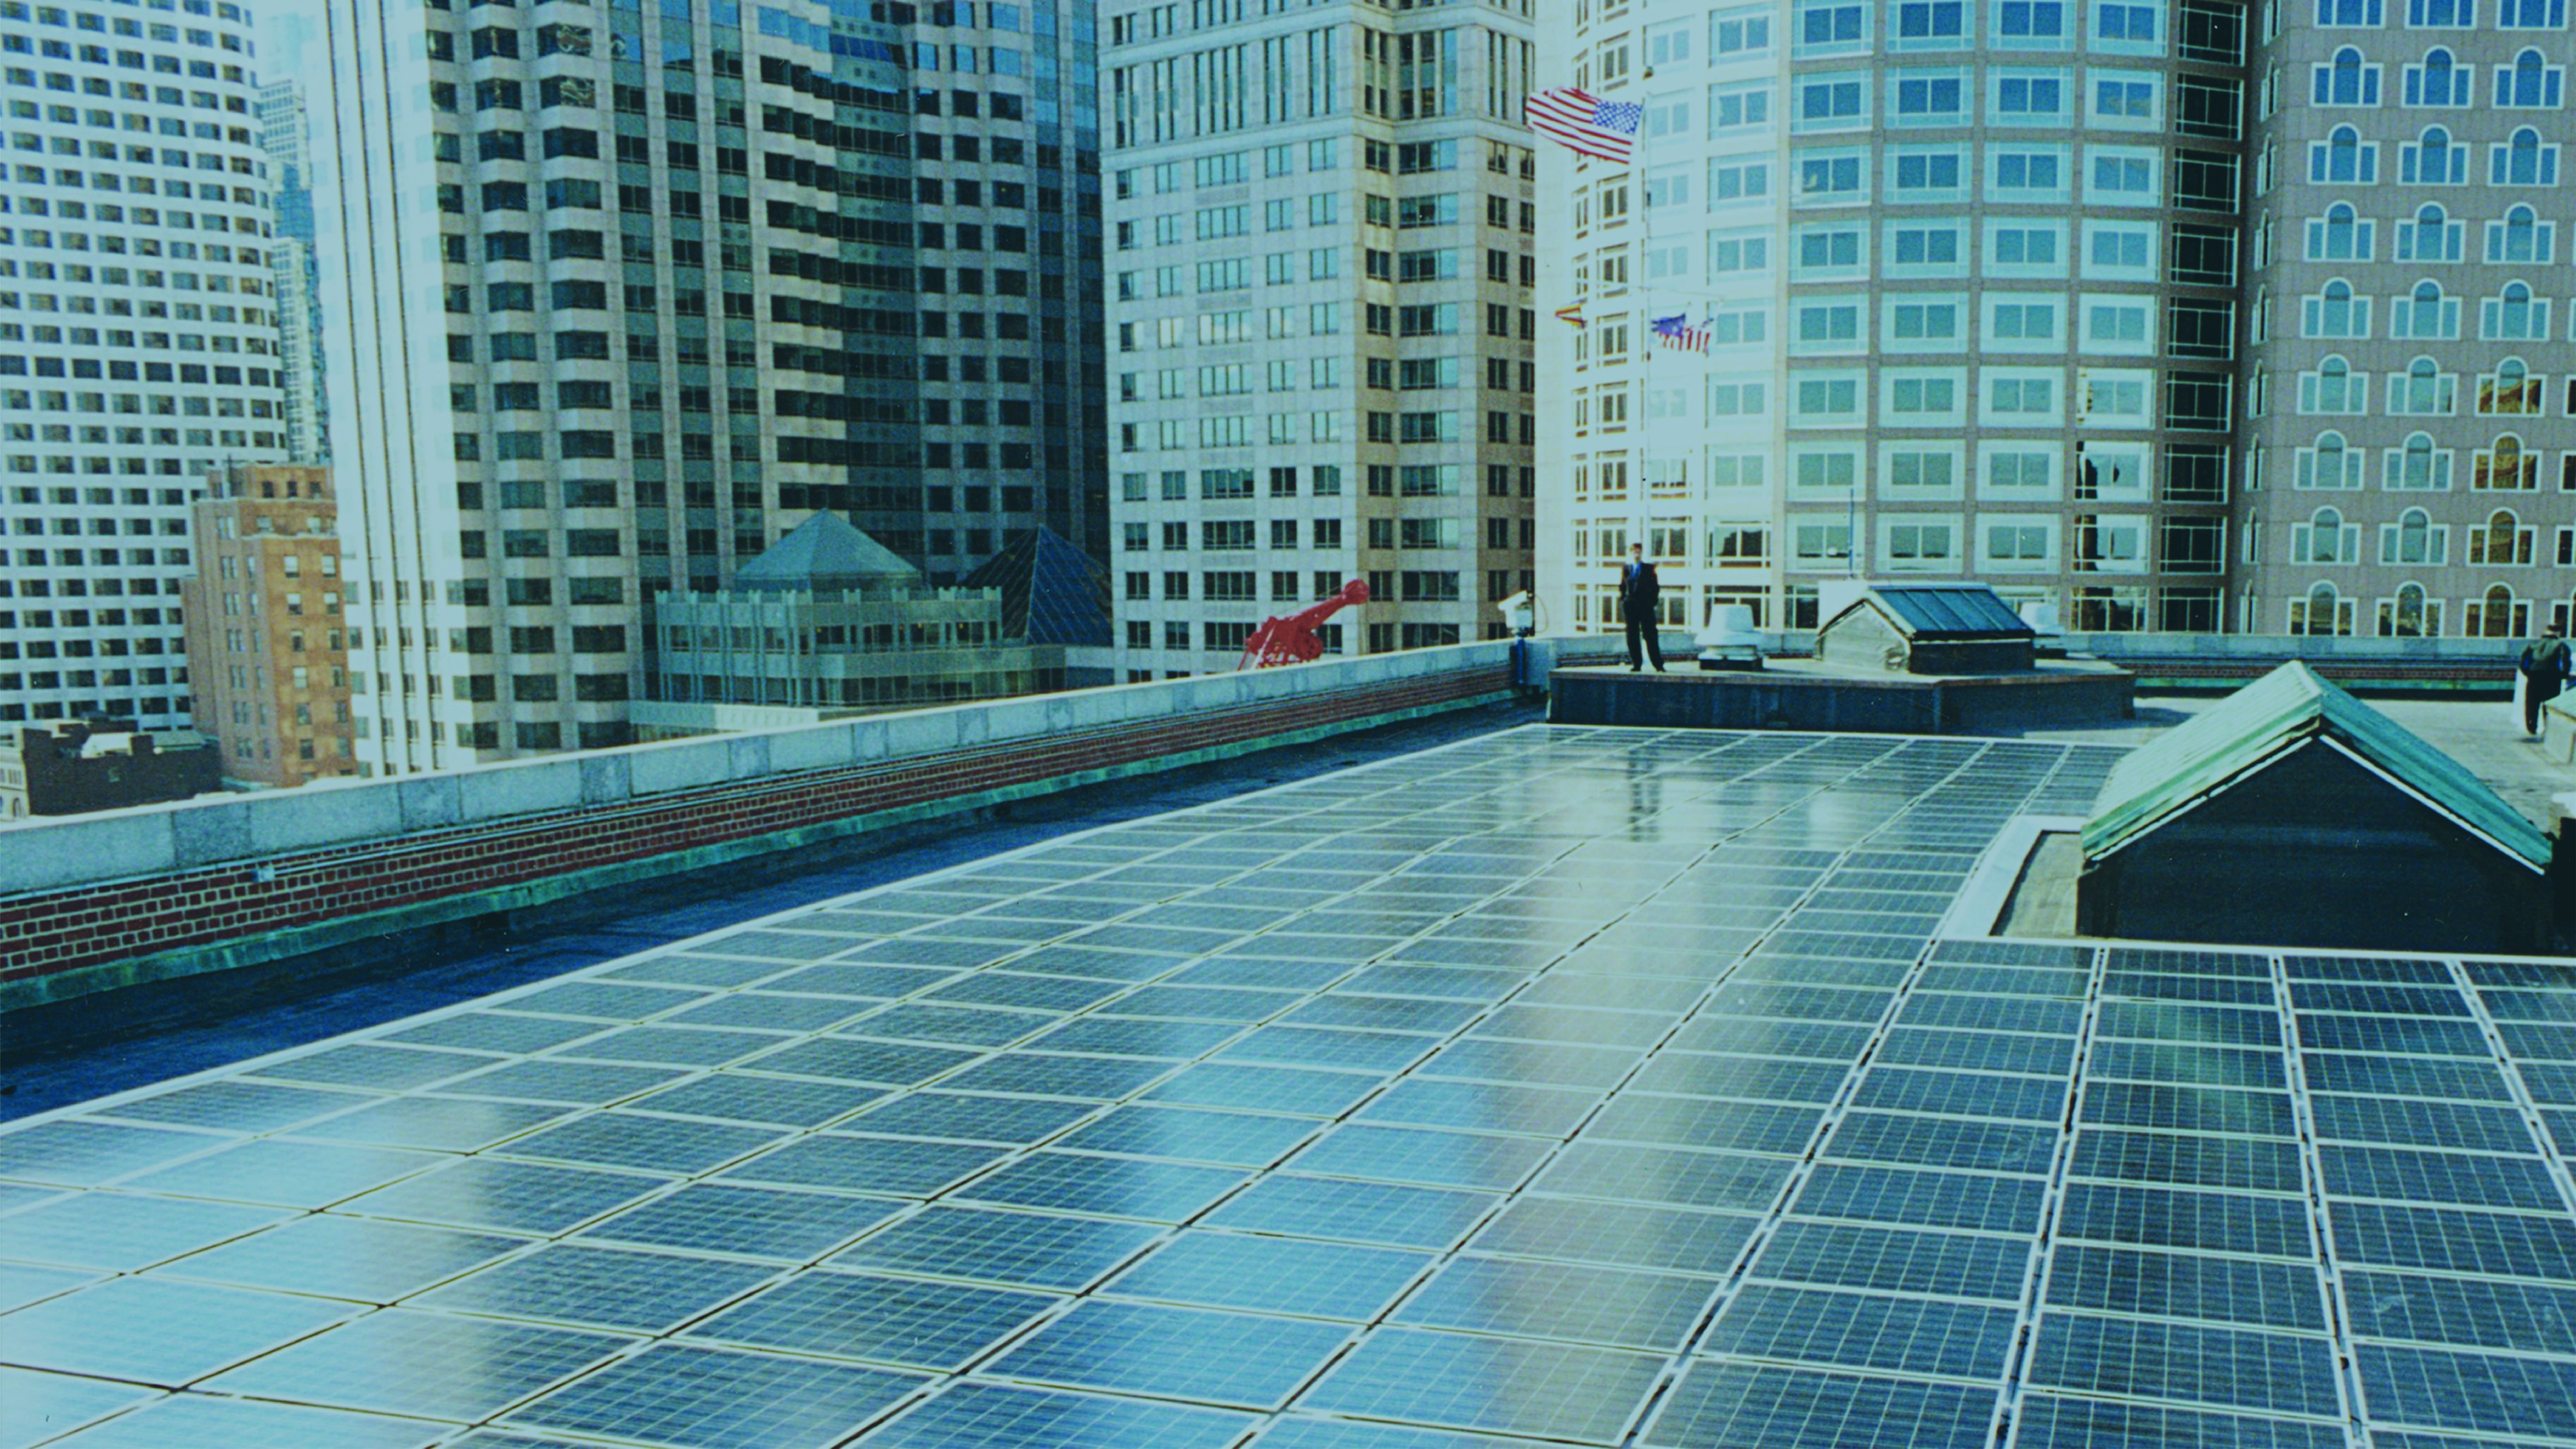 <h3>Value-of-solar studies inconsistently account for solar energy's benefits, especially beyond the electric grid, resulting in dramatically different conclusions.</h3><em>Boston, MA - National Environmental Energy Laboratory Photo</em>